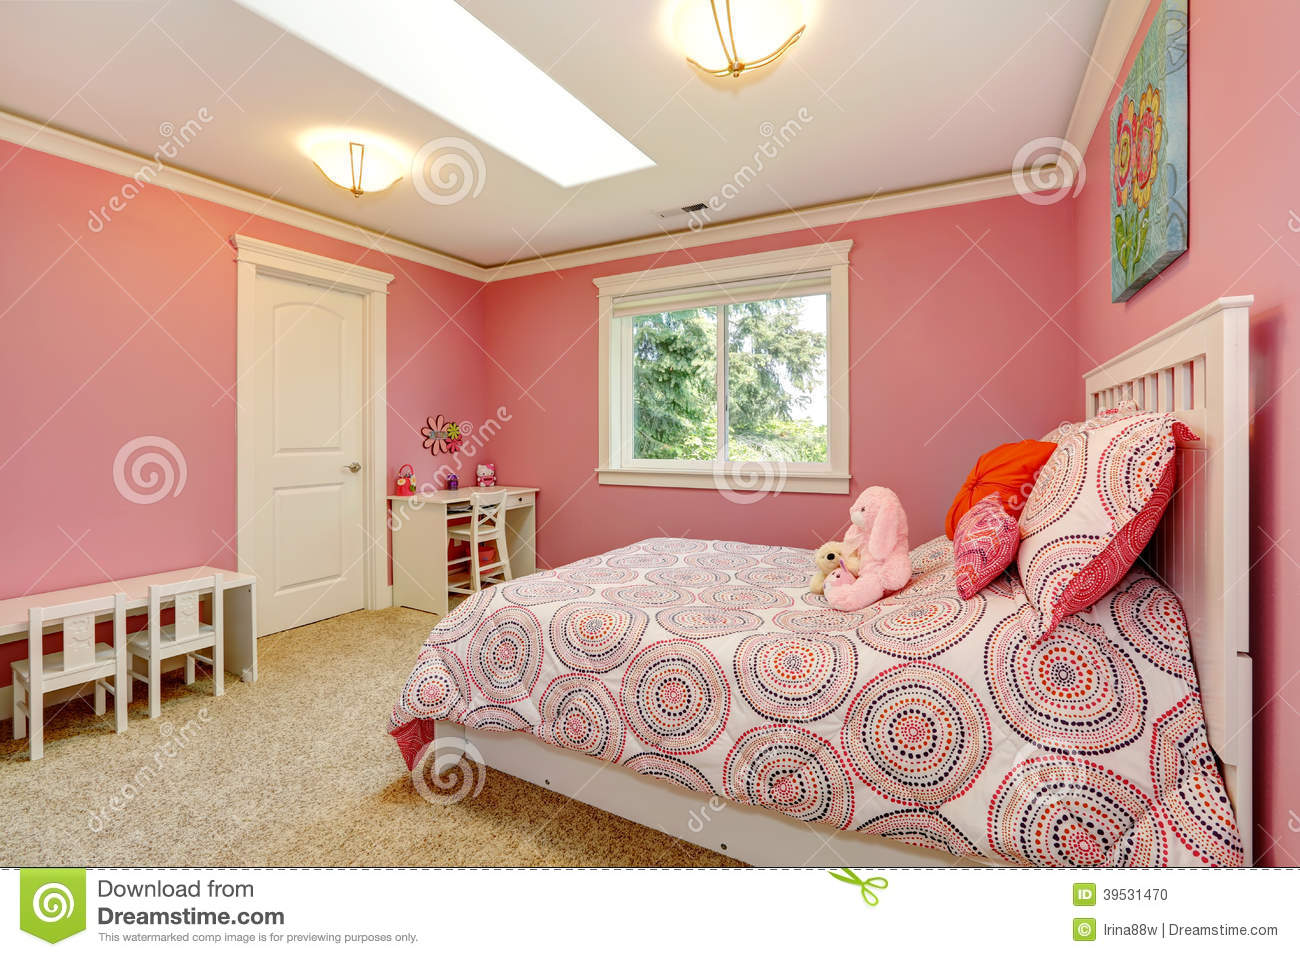 belle chambre coucher rose pour des filles photo stock image 39531470. Black Bedroom Furniture Sets. Home Design Ideas